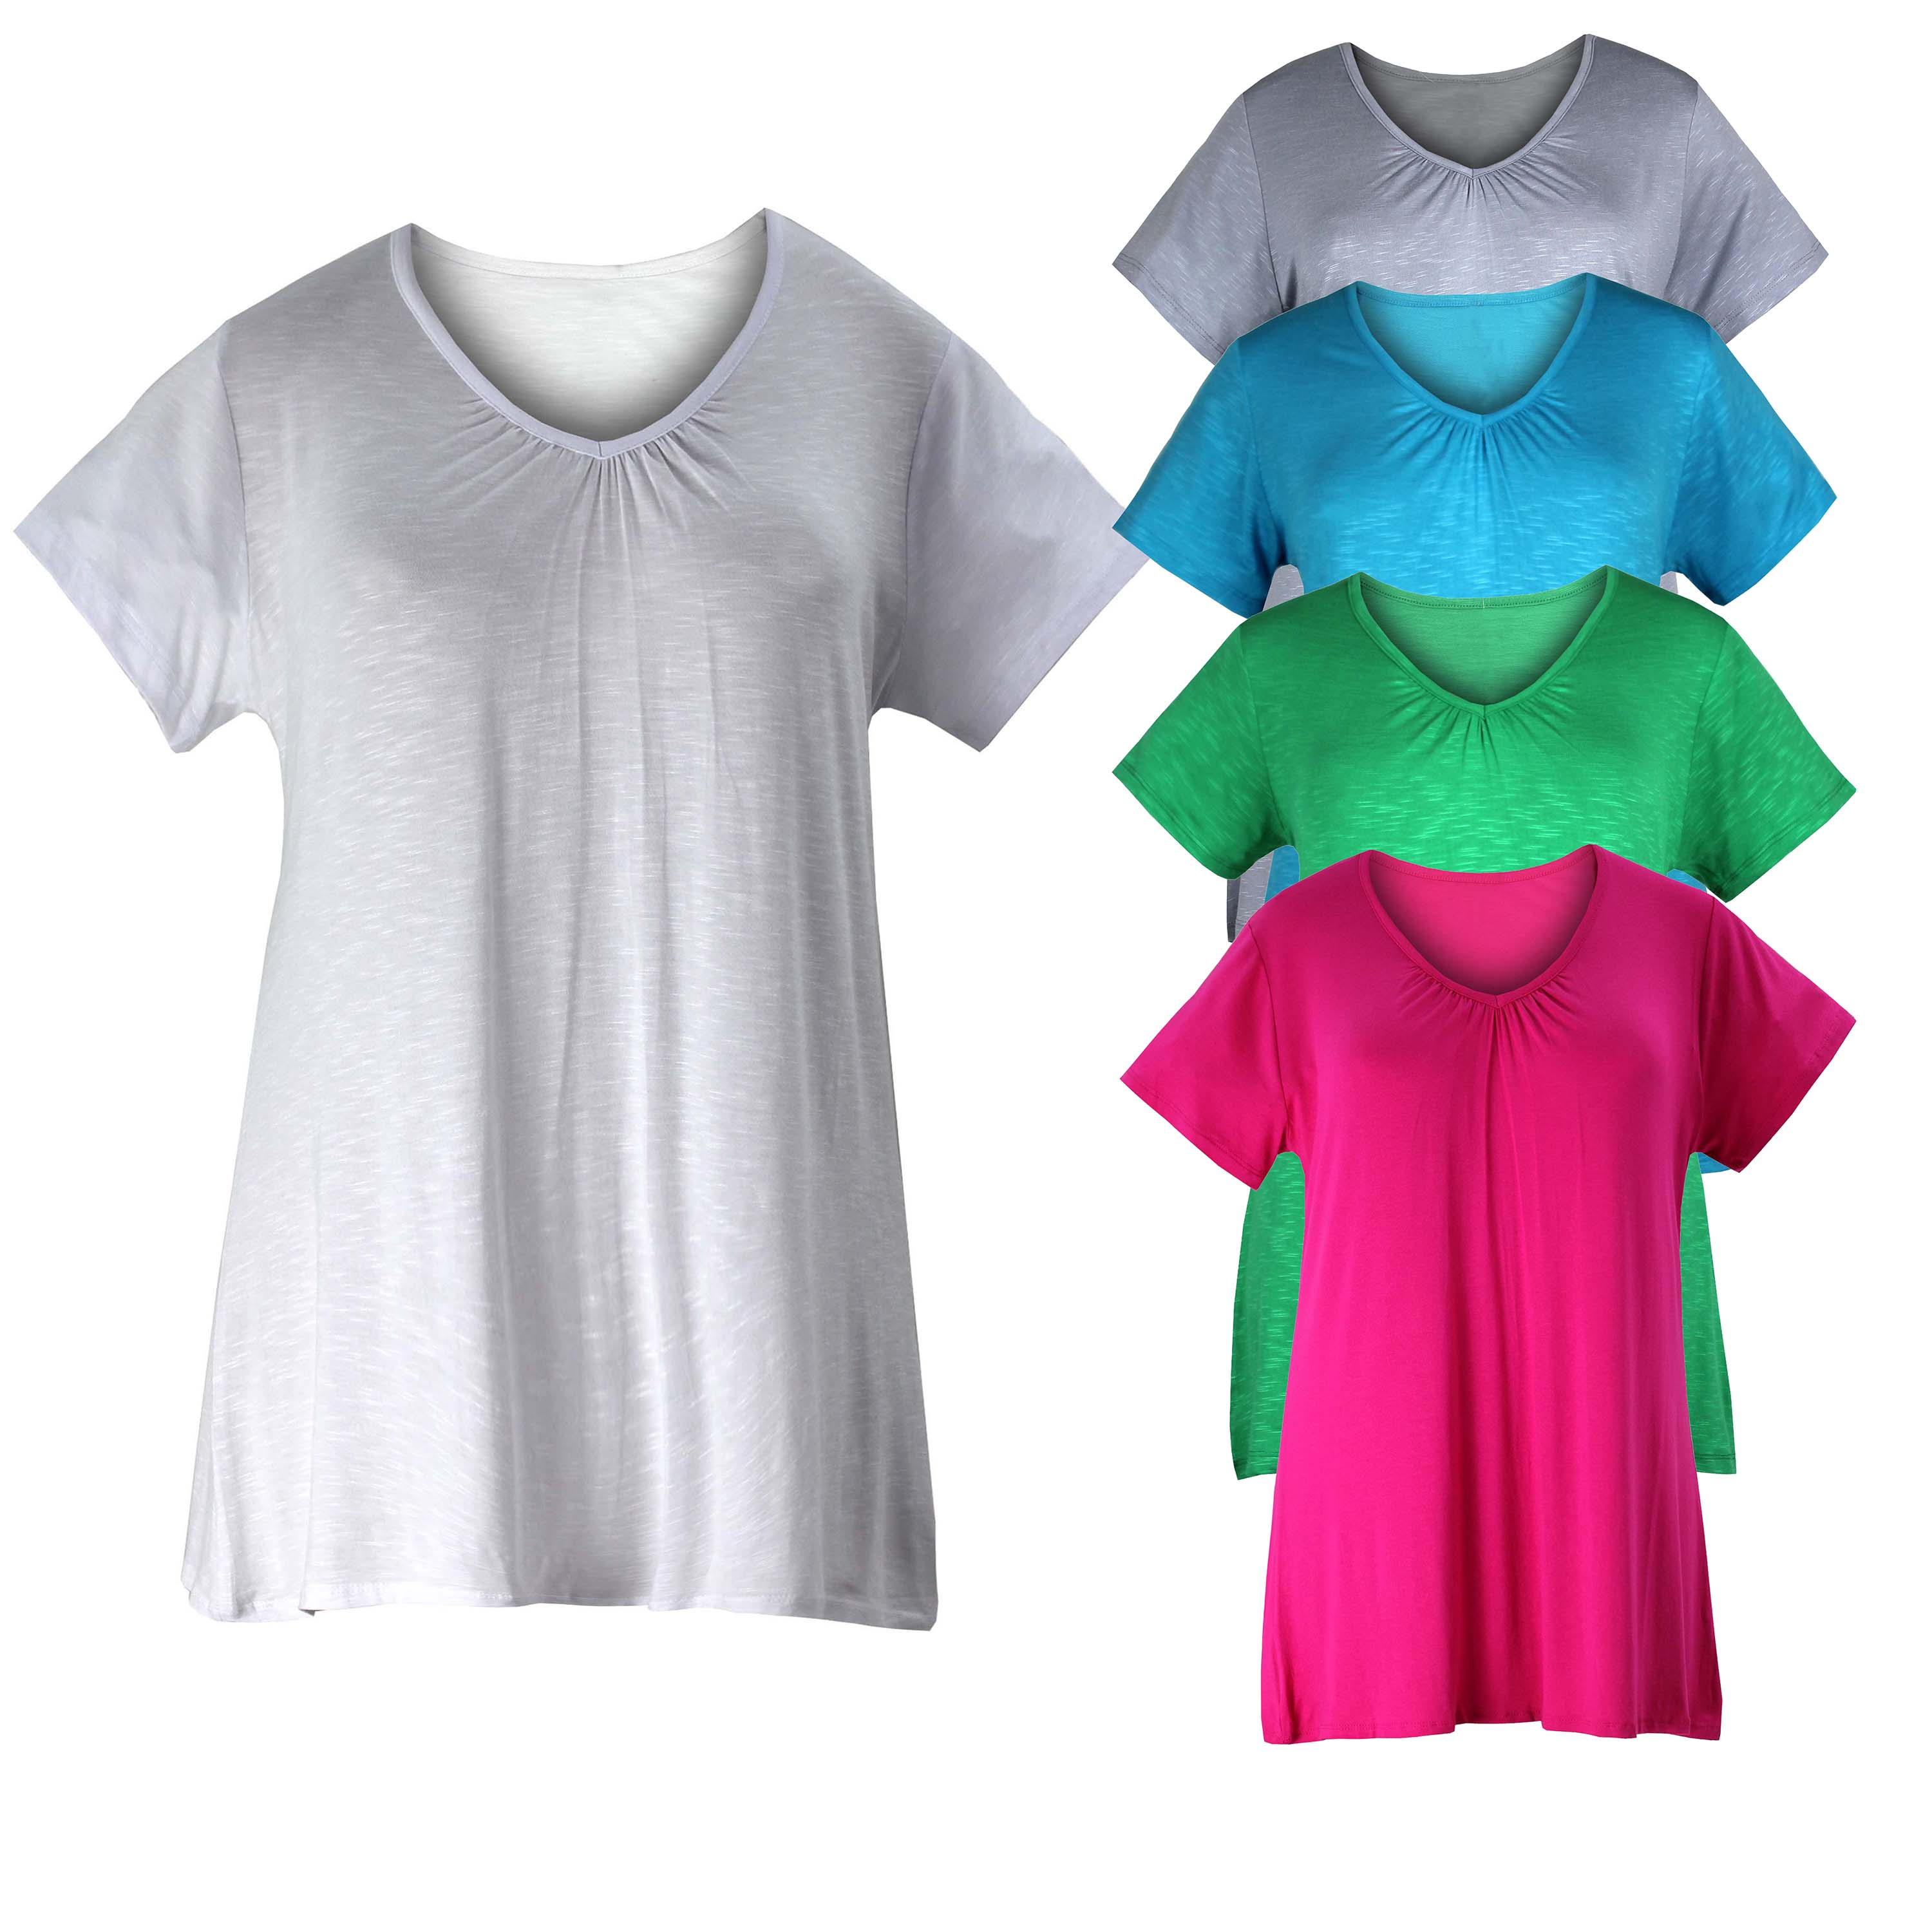 Creative Expression Short Sleeve Tunic $ $ $ Fan of Fun Knit Tunic in Dinosaur $ Fan of Fun Knit Tunic in Watermelon $ $ $ Swing Into Sweetness Sleeveless Tunic $ Tunics are terrific for adding length and dimension to your everyday wardrobe.